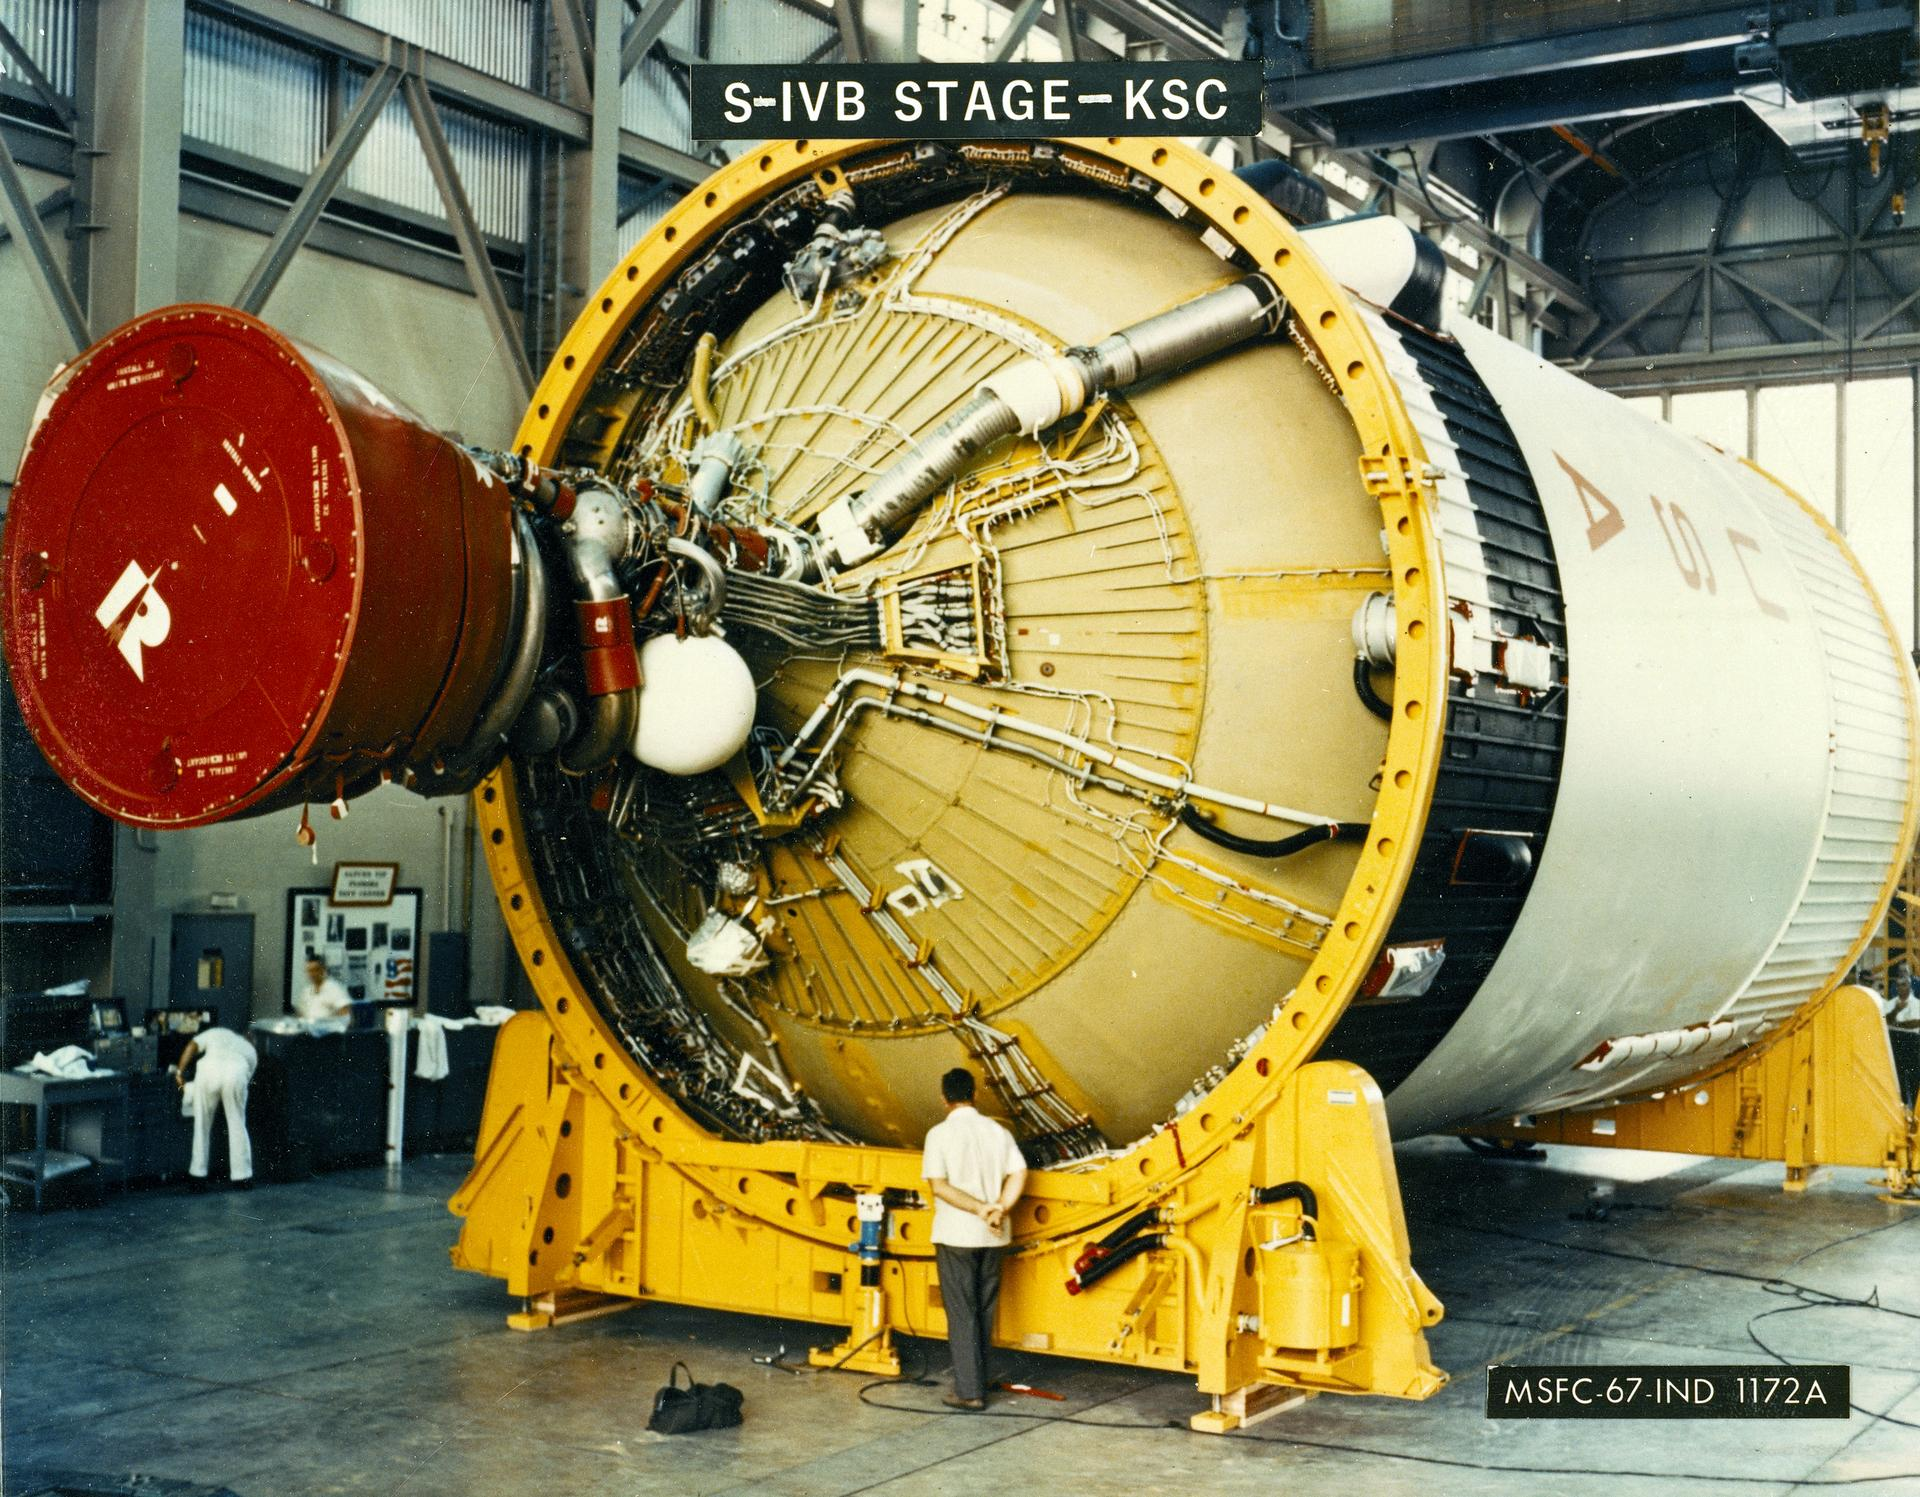 An S-IVB stage with a technician at Kennedy Space Center.